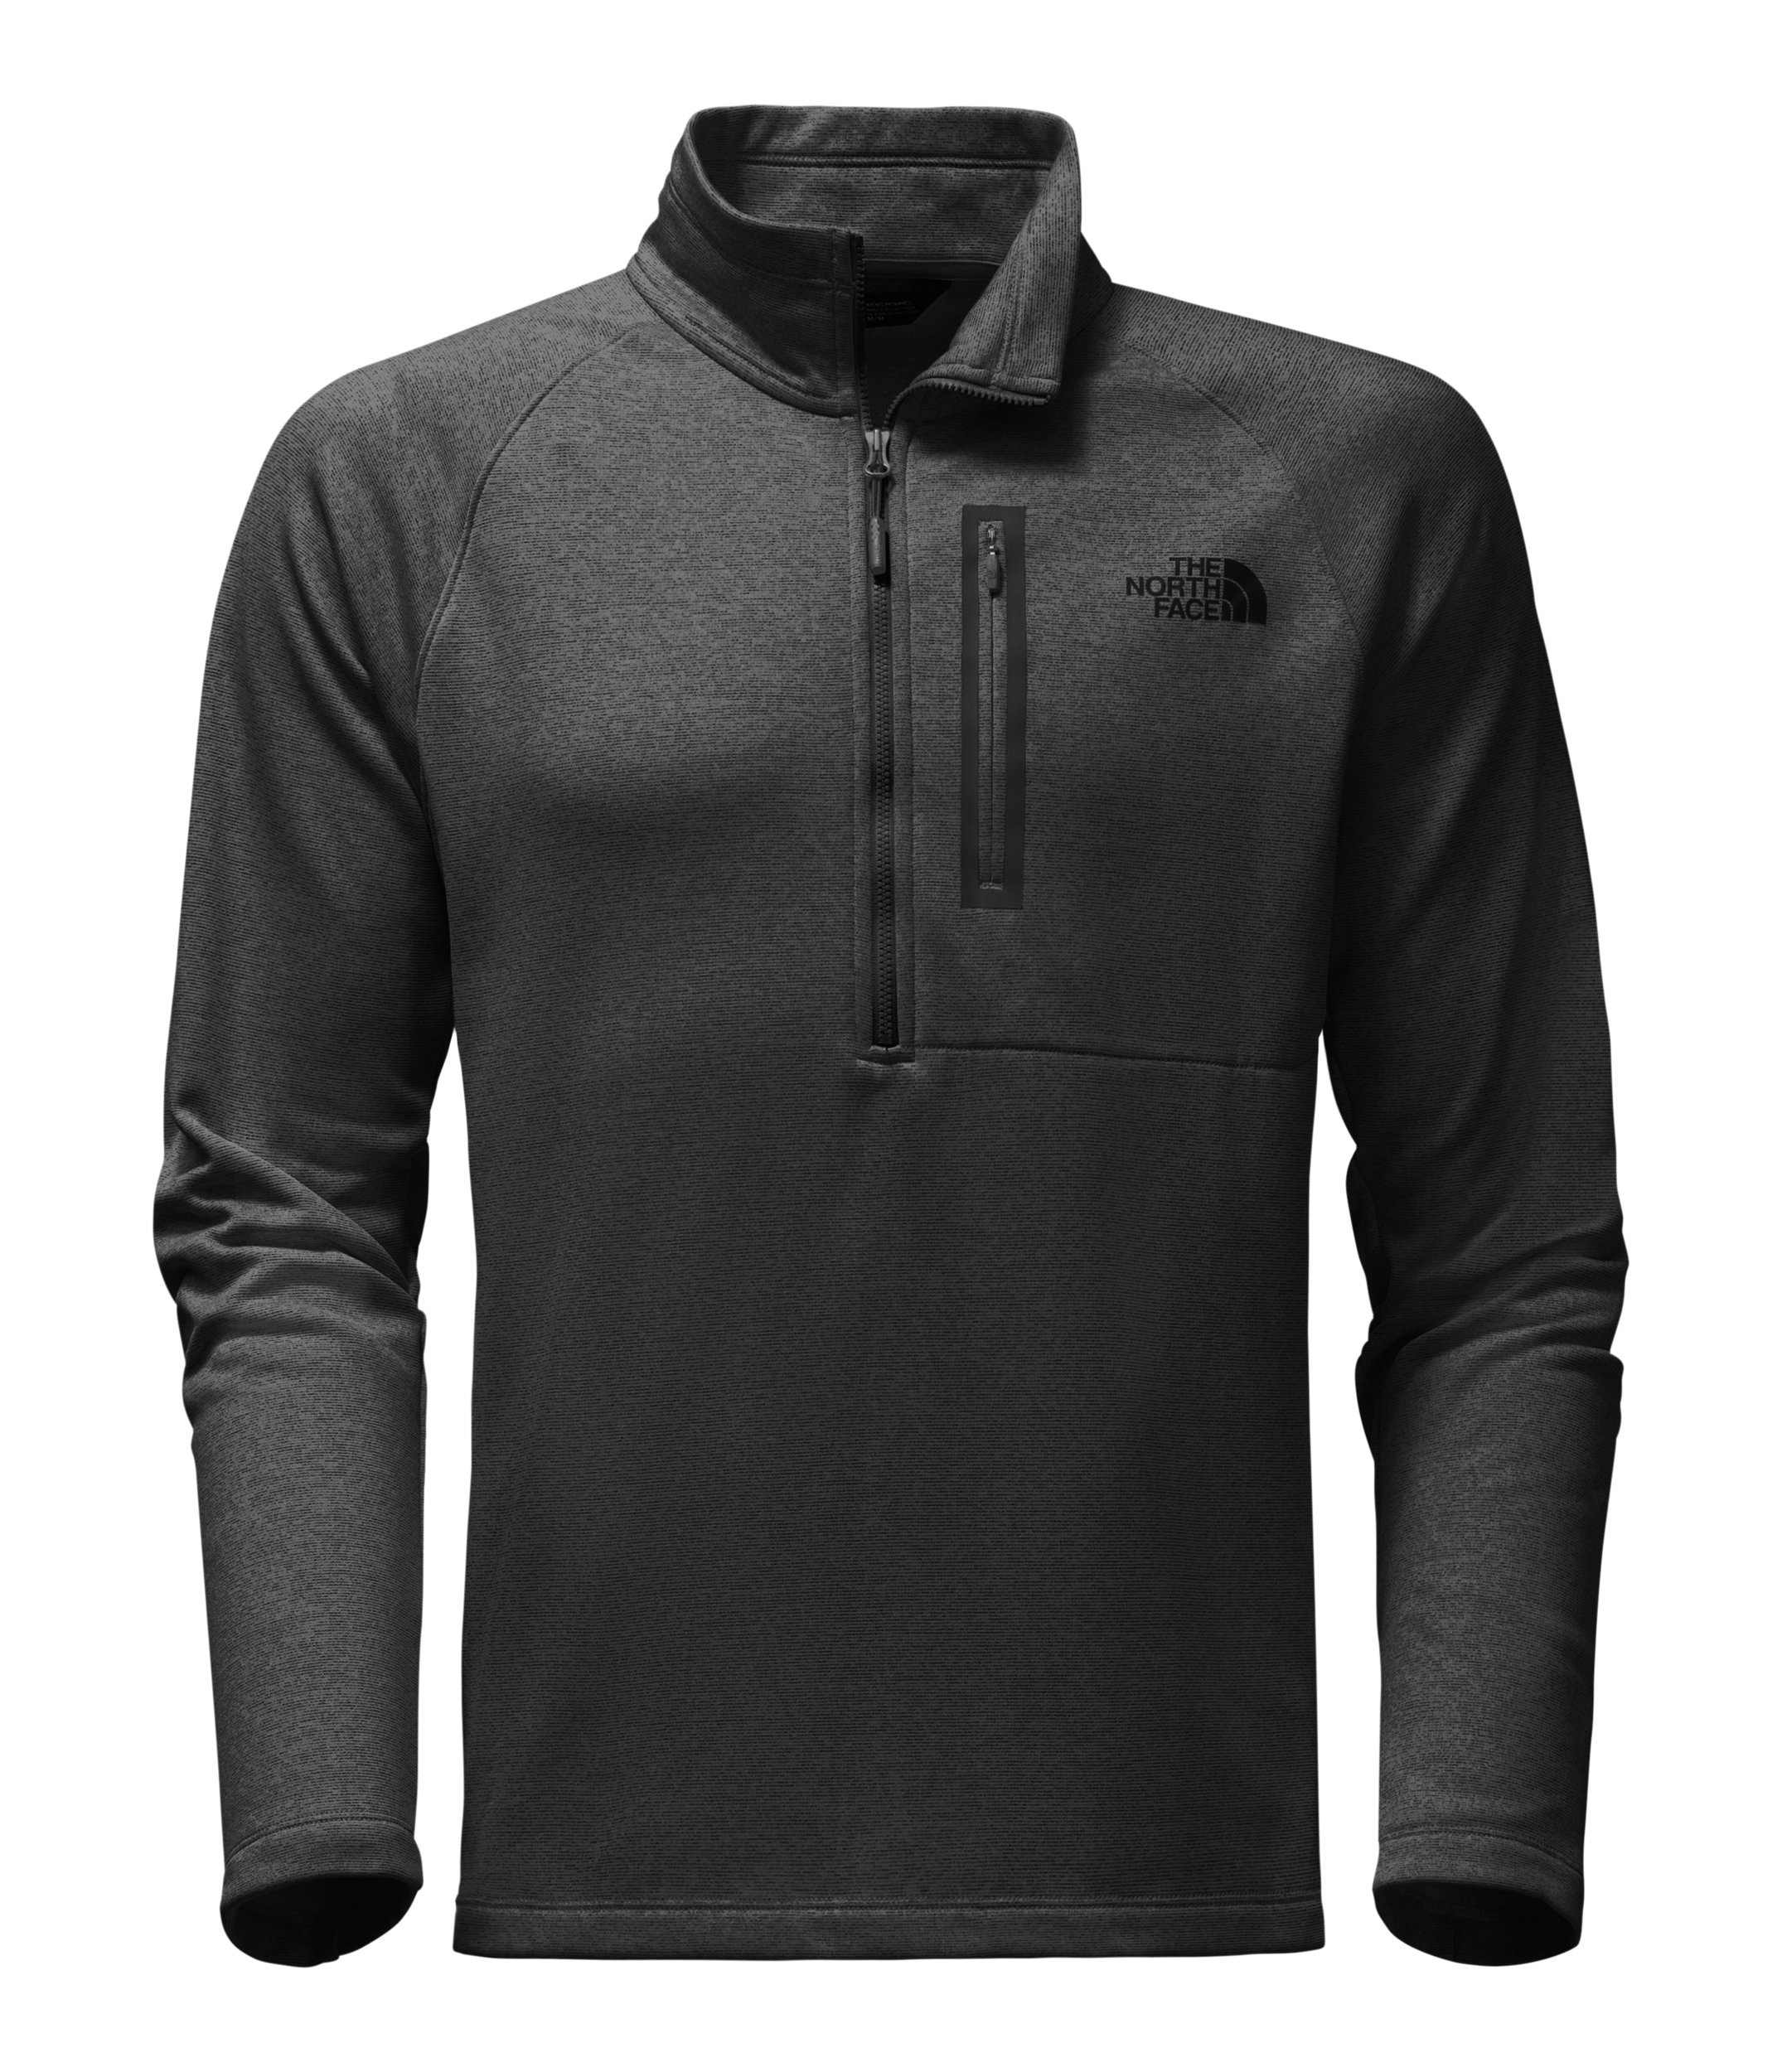 The North Face Men's Canyonlands 1 & 2 Zip TNF Dark Grey Heather - M by The North Face